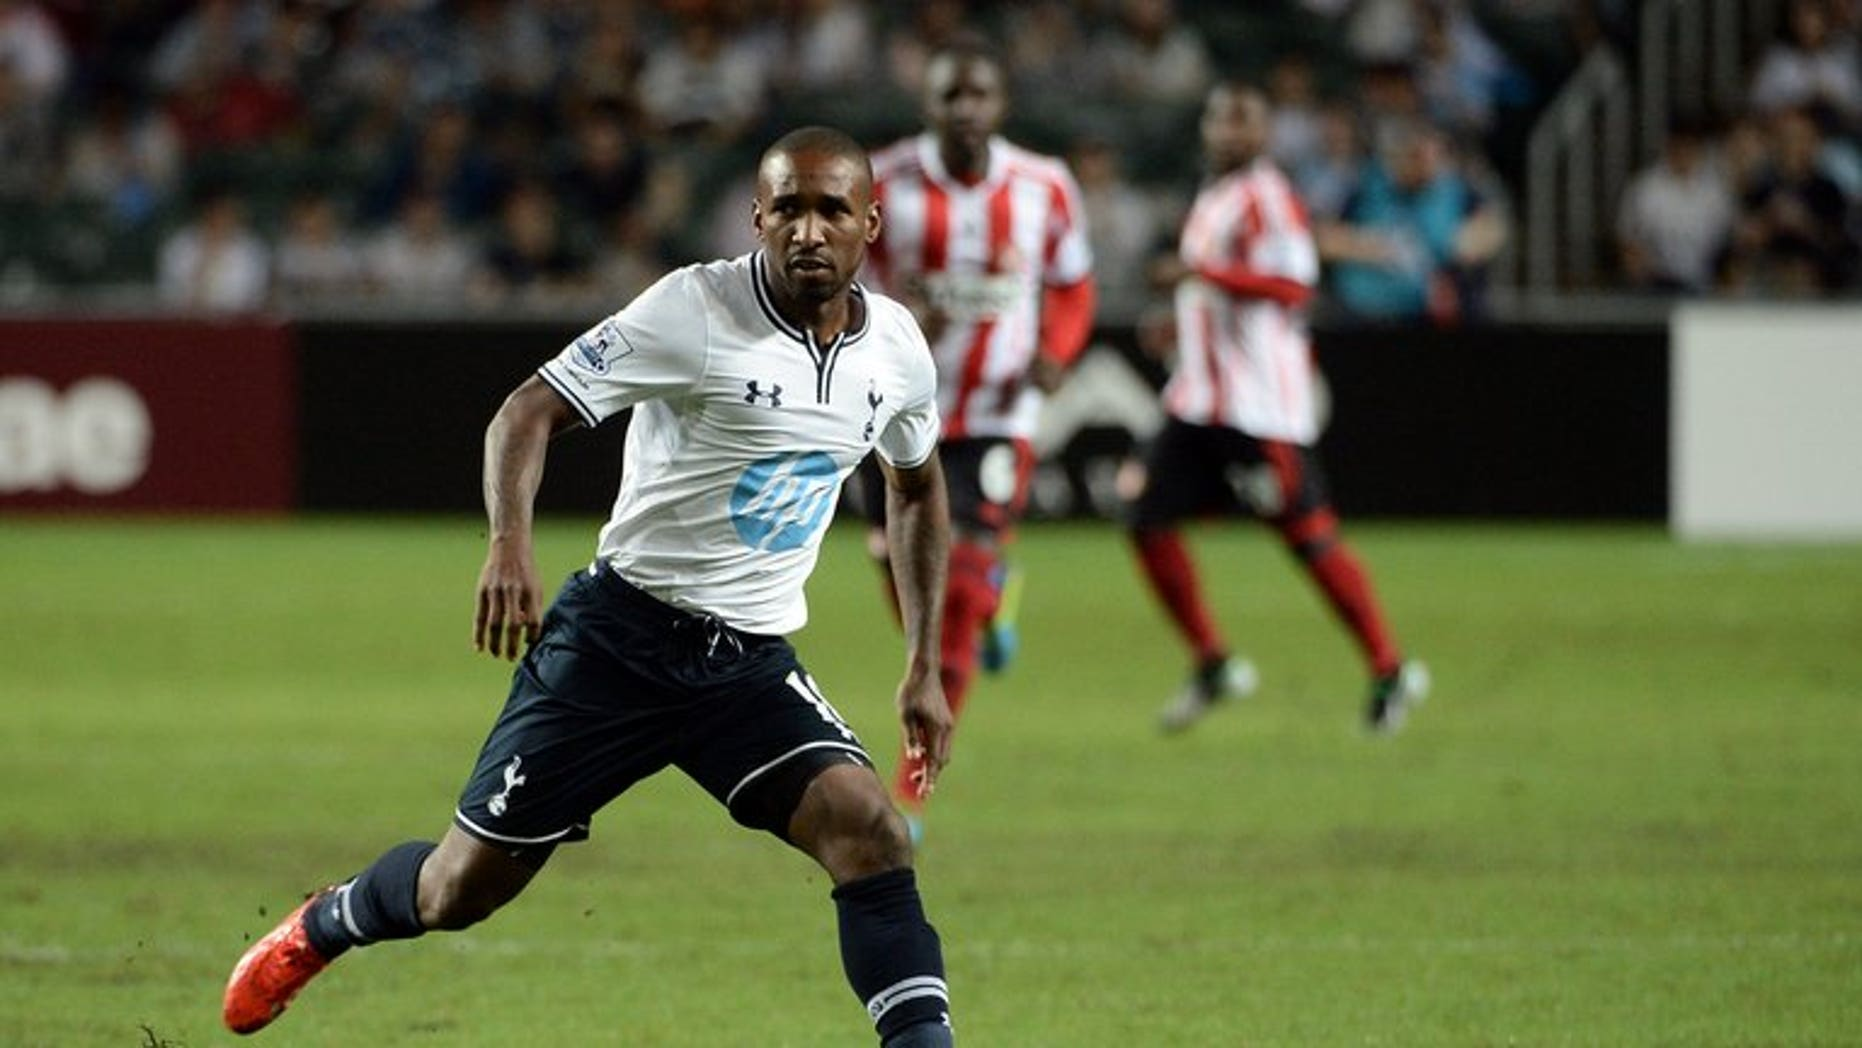 Jermain Defoe of Tottenham Hotspur controls the ball against Sunderland during their football match in the Barclays Asia Trophy tournament at Hong Kong Stadium on July 24, 2013. Spurs eased to a 6-0 romp over a hopelessly outclassed South China on Saturday in Hong Kong with Defoe scoring a hat-trick and setting up another successful strike.